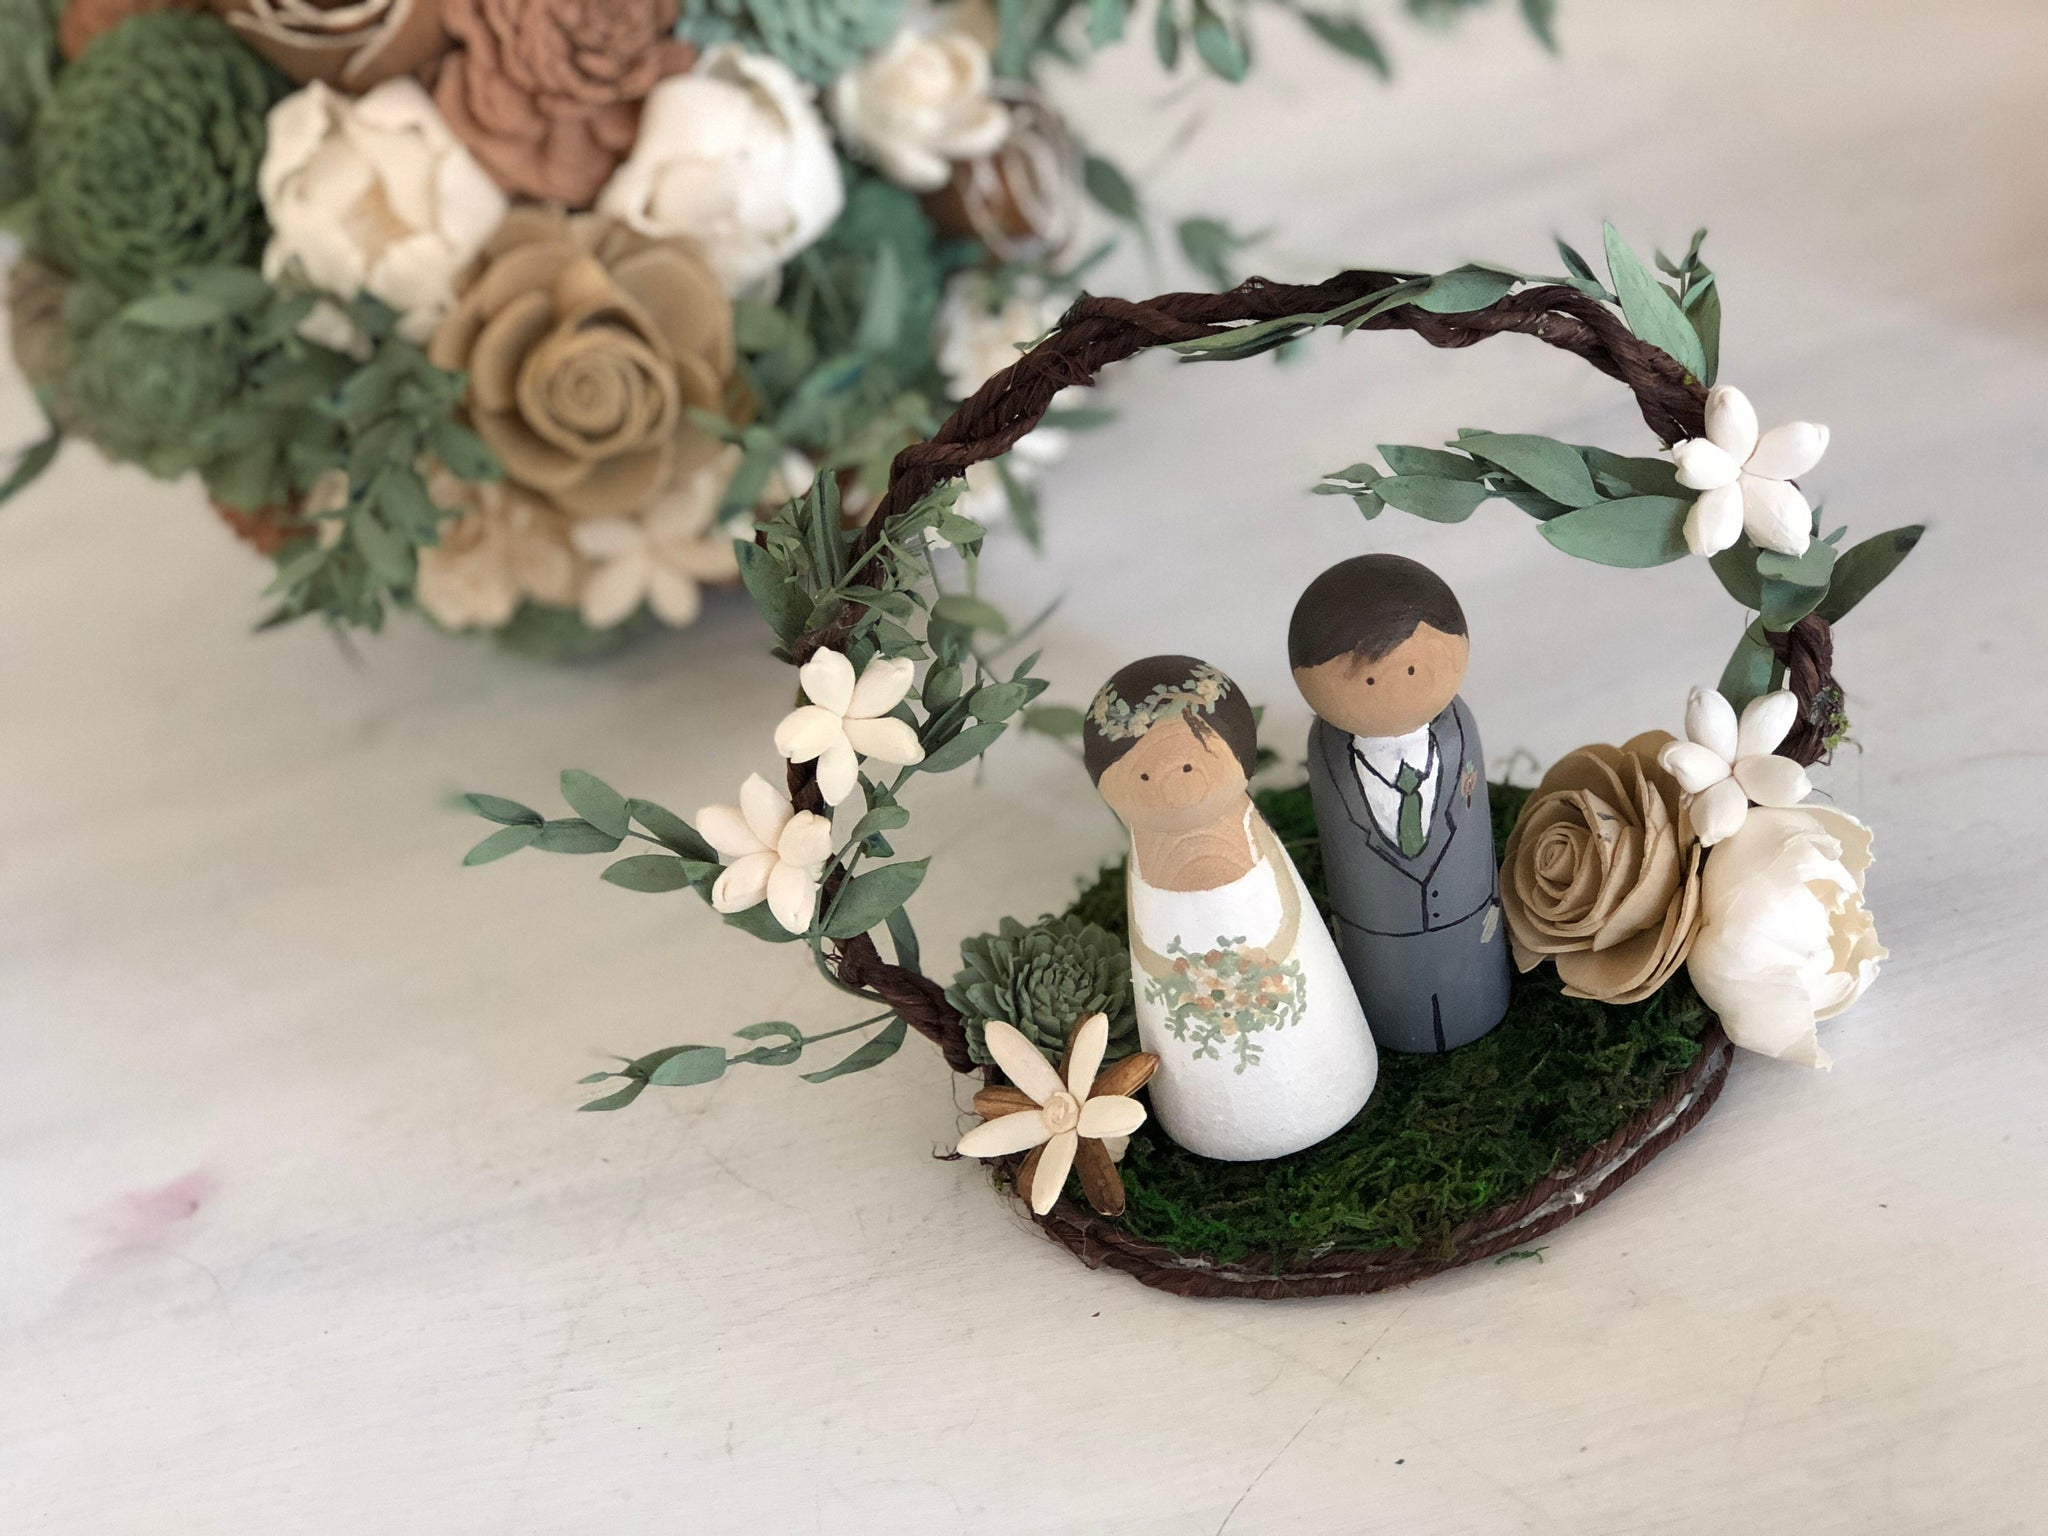 CUSTOM Cake Topper with Handpainted Peg Dolls - Sola Flowers - Wood Flowers - Matching Bouquet -Wedding Cake Topper - Flowers NOT Included